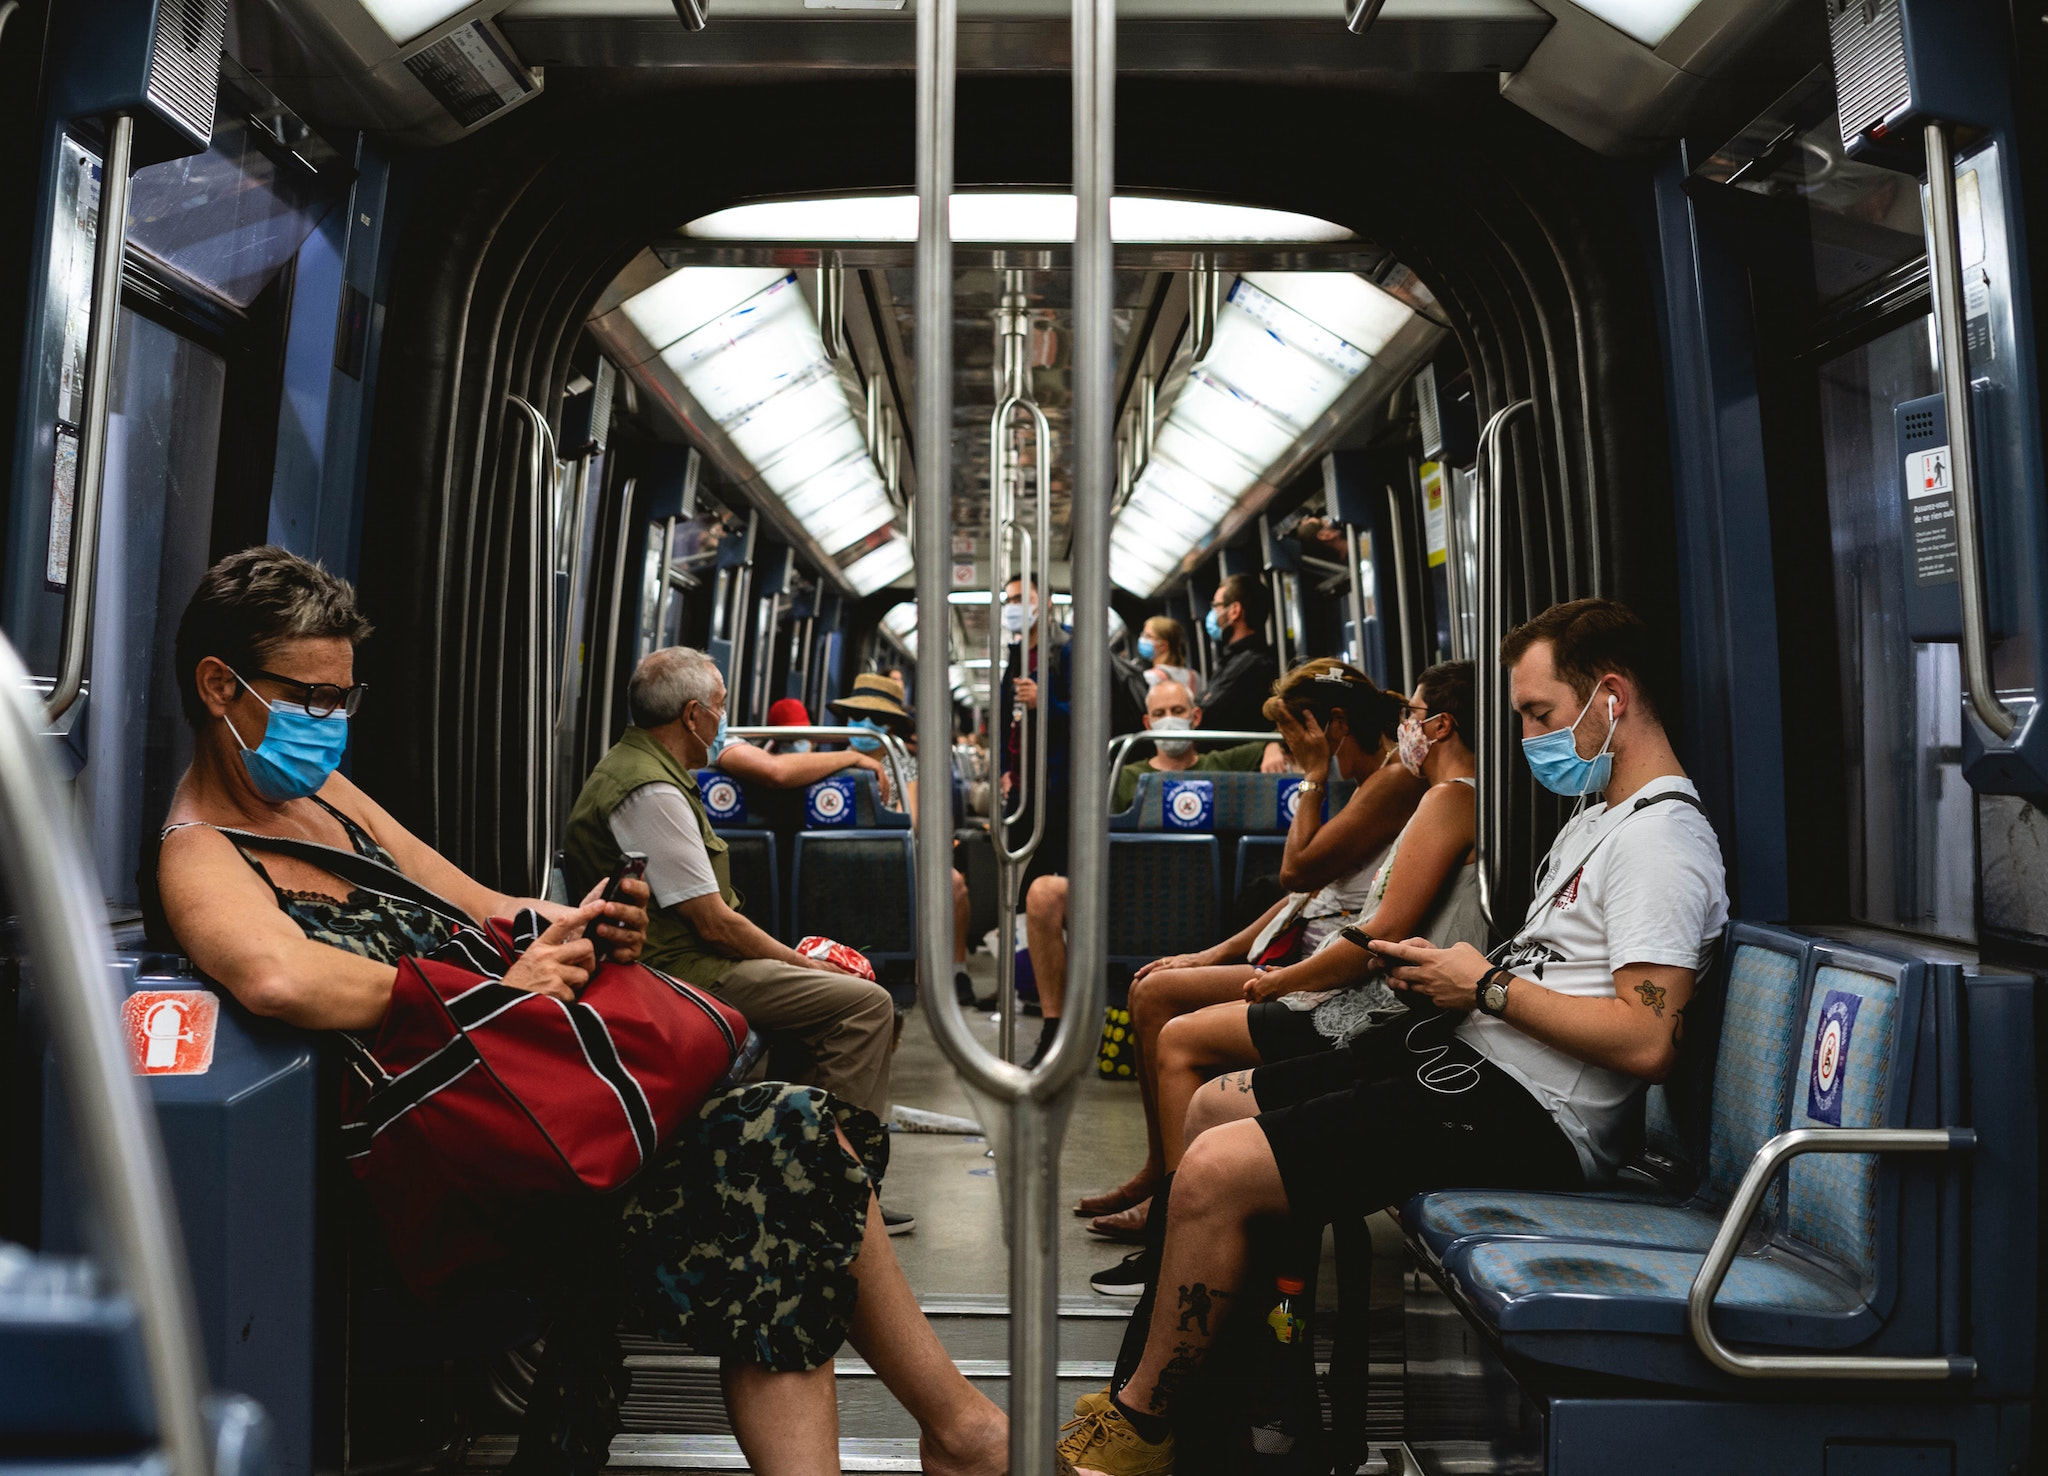 People sit in the Paris metro while wearing required face masks.